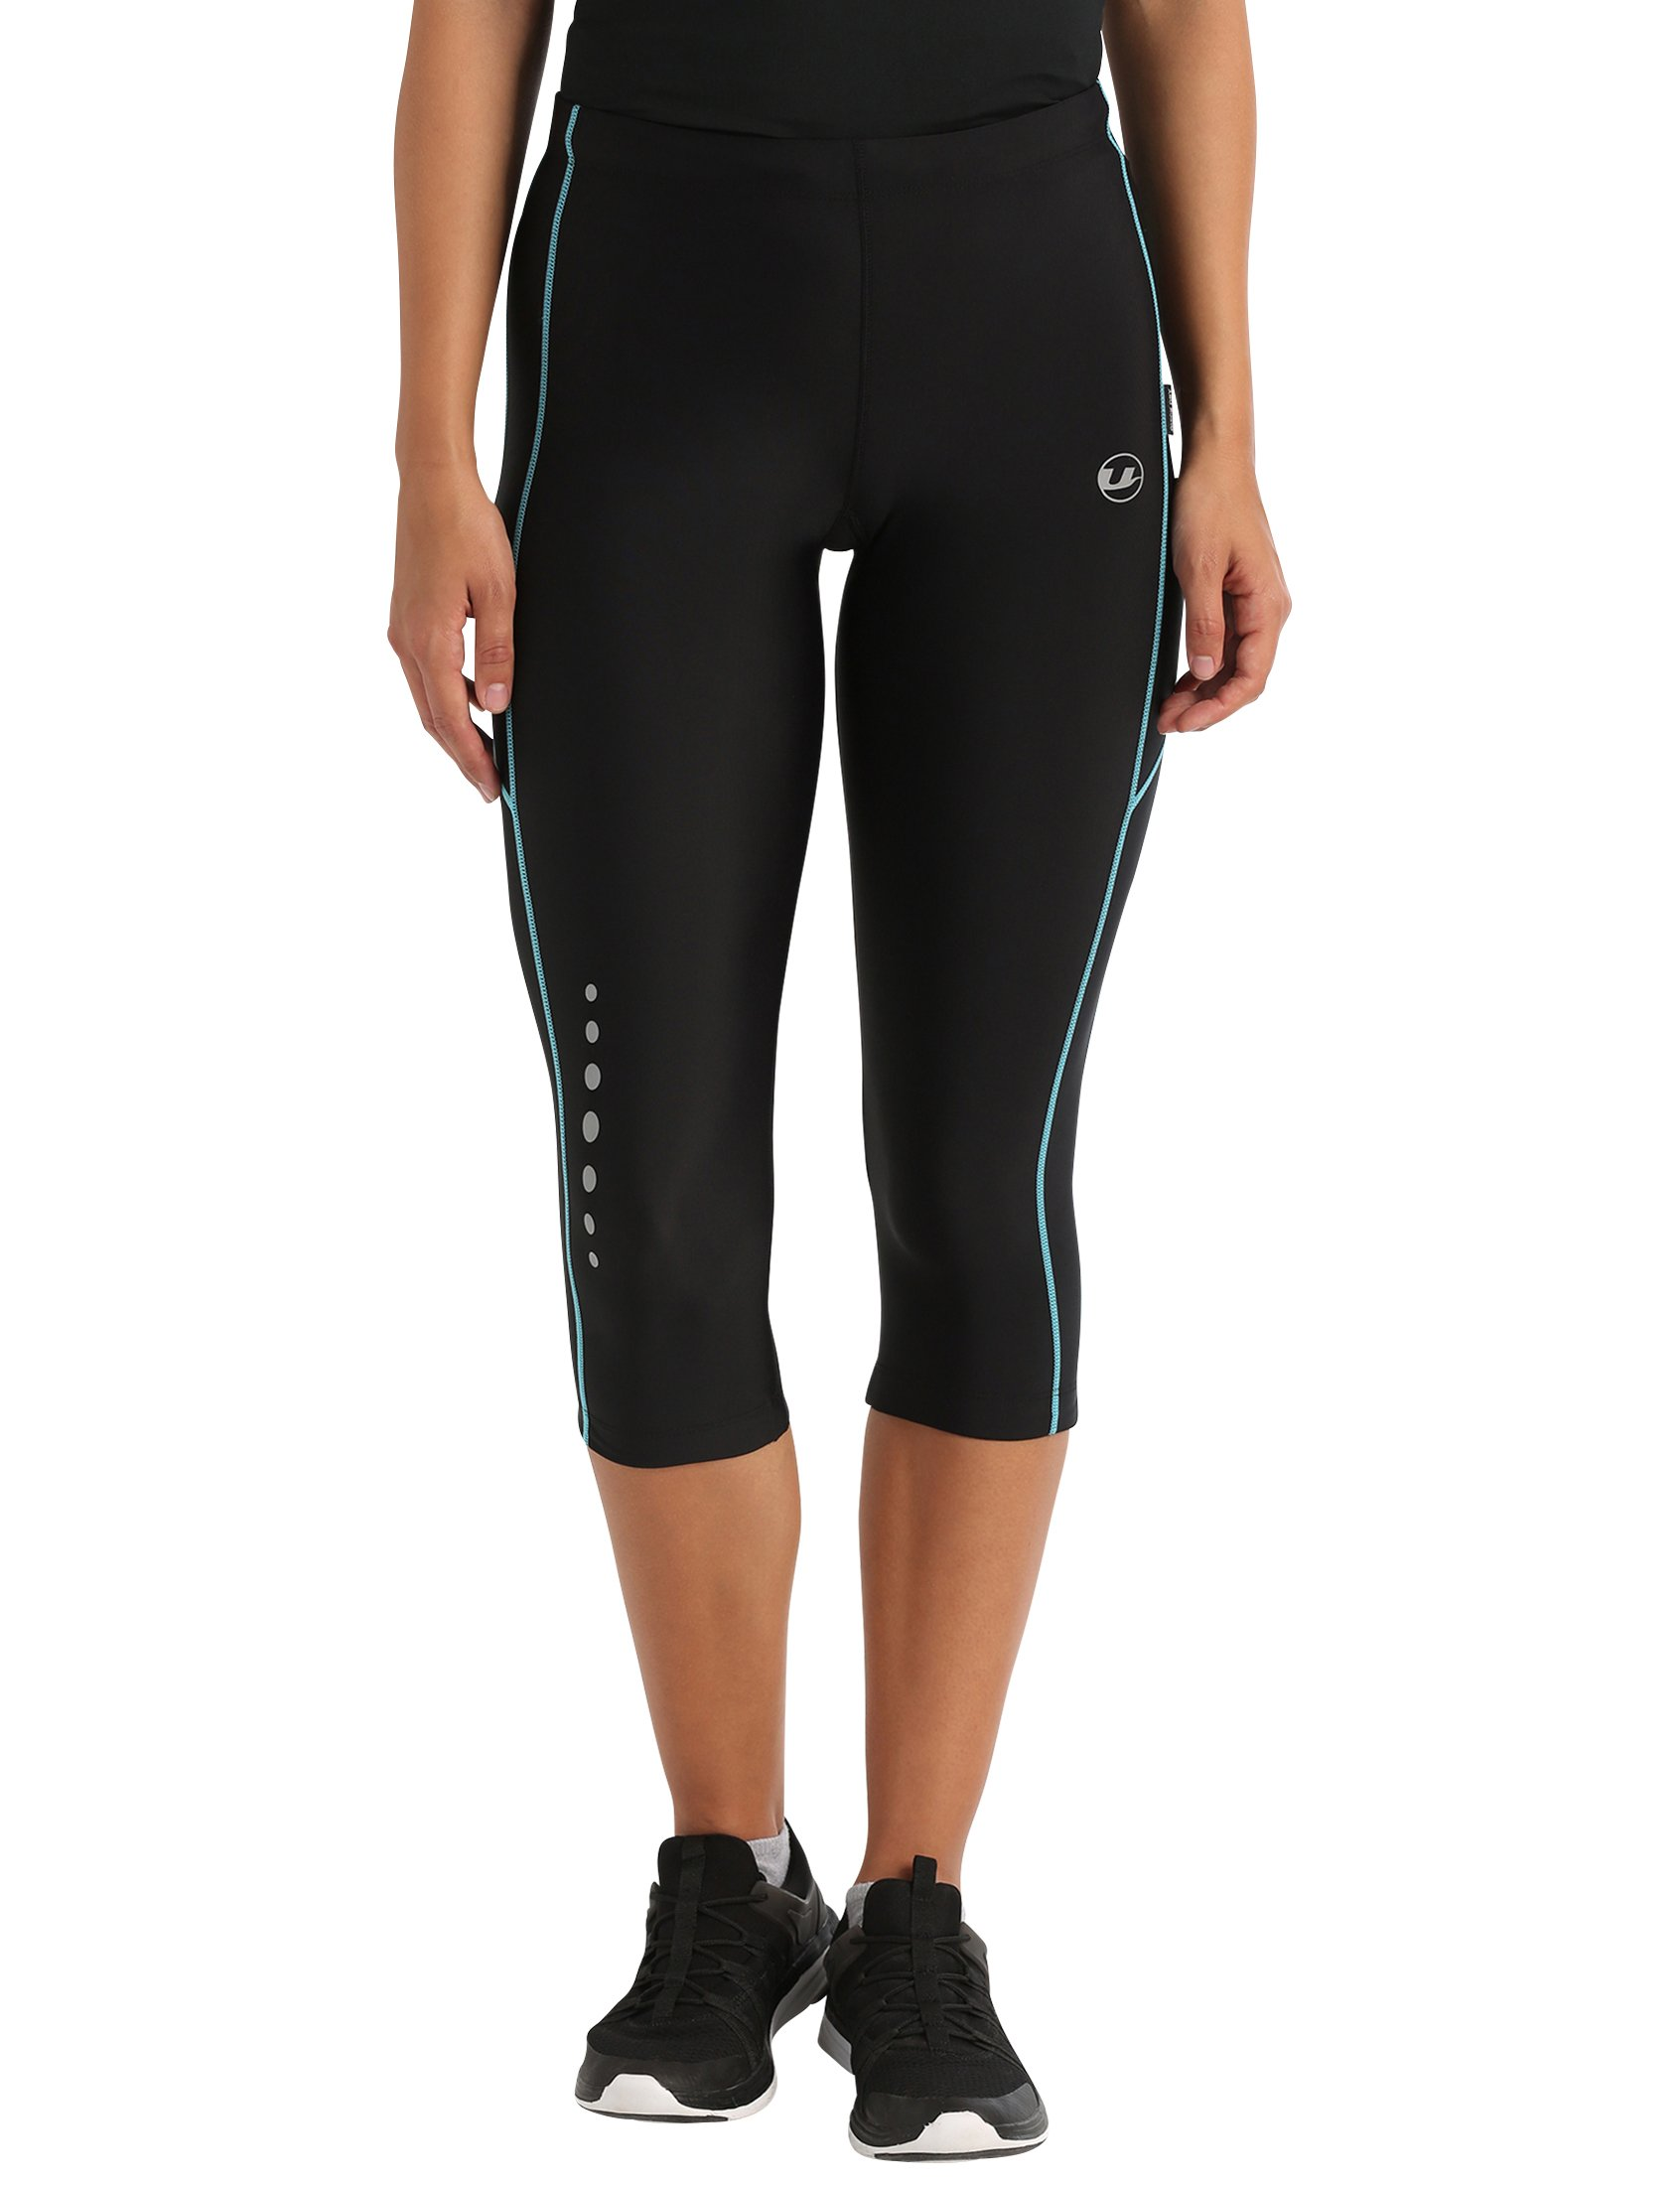 711meDIW 5L - Ultrasport Women's Running Pants Capri with Compression Effect & Quick-Dry-Function